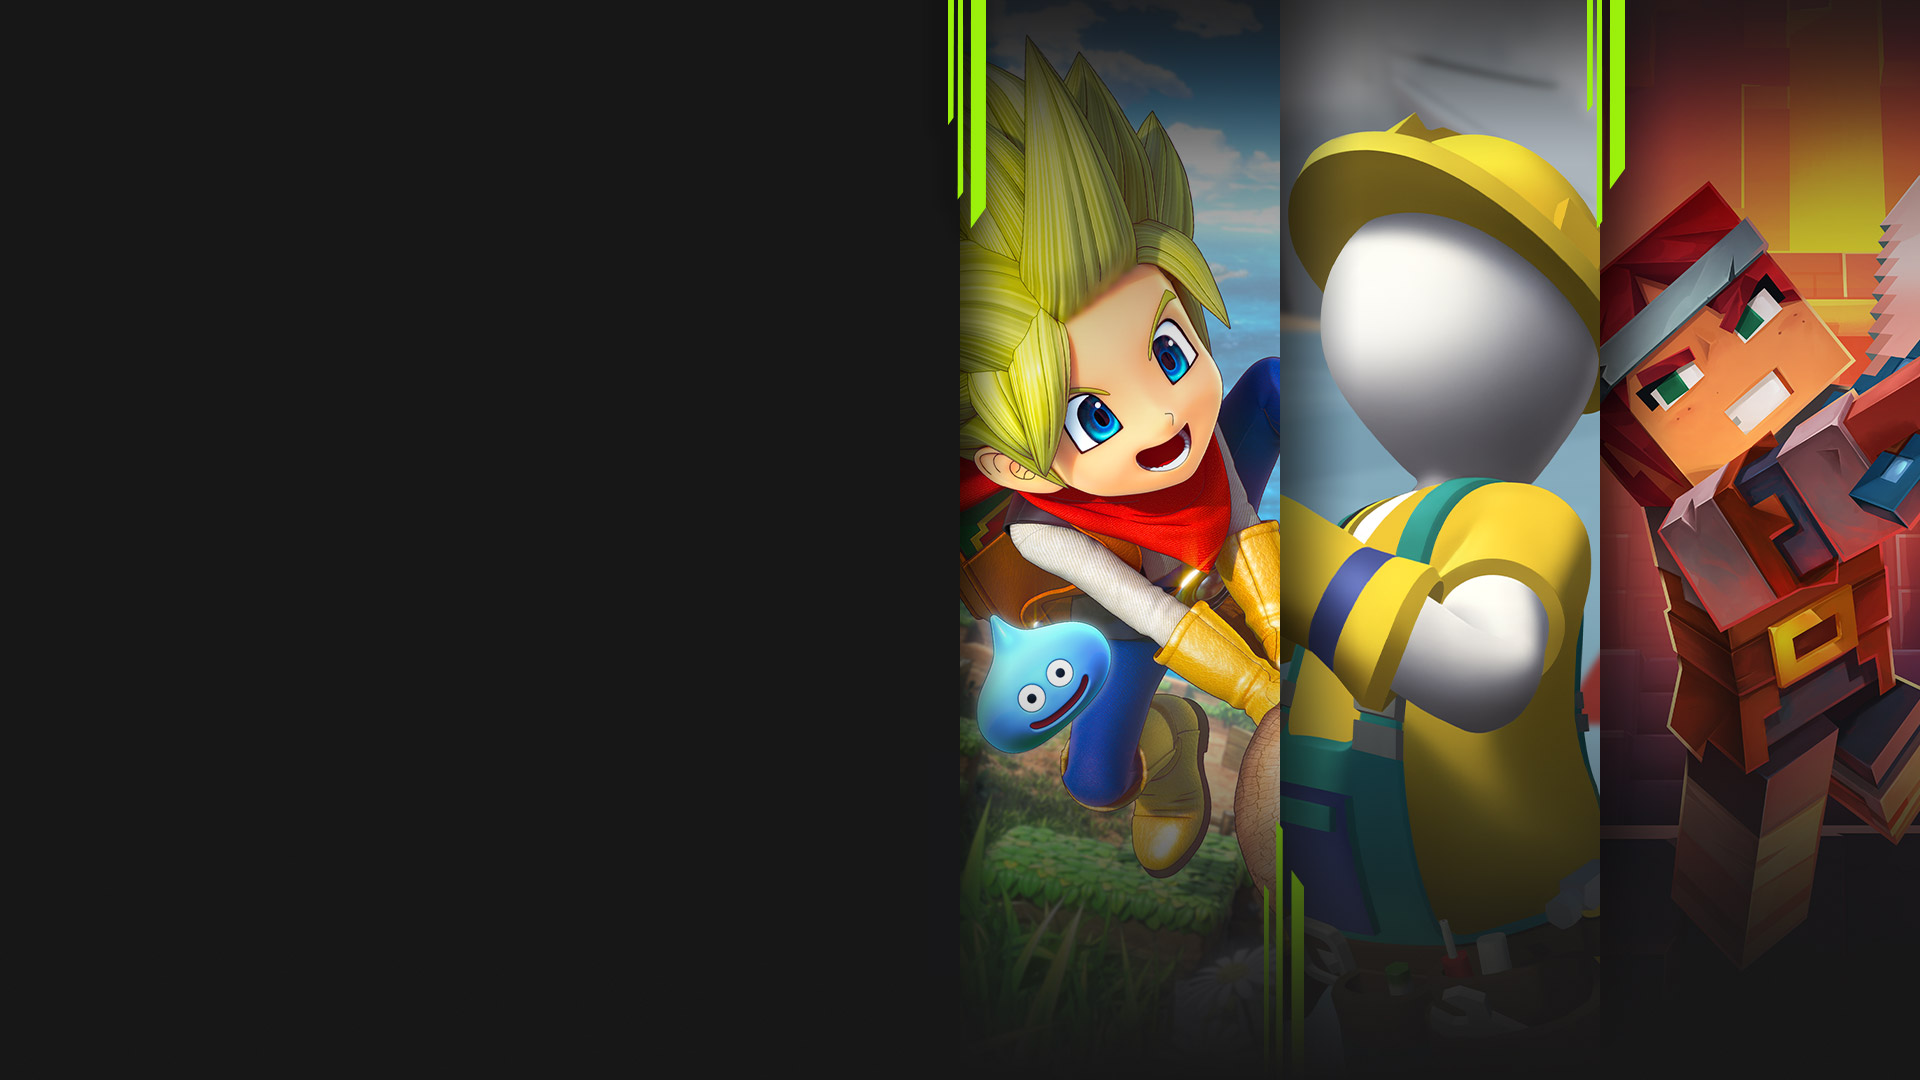 Game art from multiple Xbox Game Pass games available on PC including Dragon Quest Builders 2, Human Fall Flat, Minecraft Dungeons and Among Us.